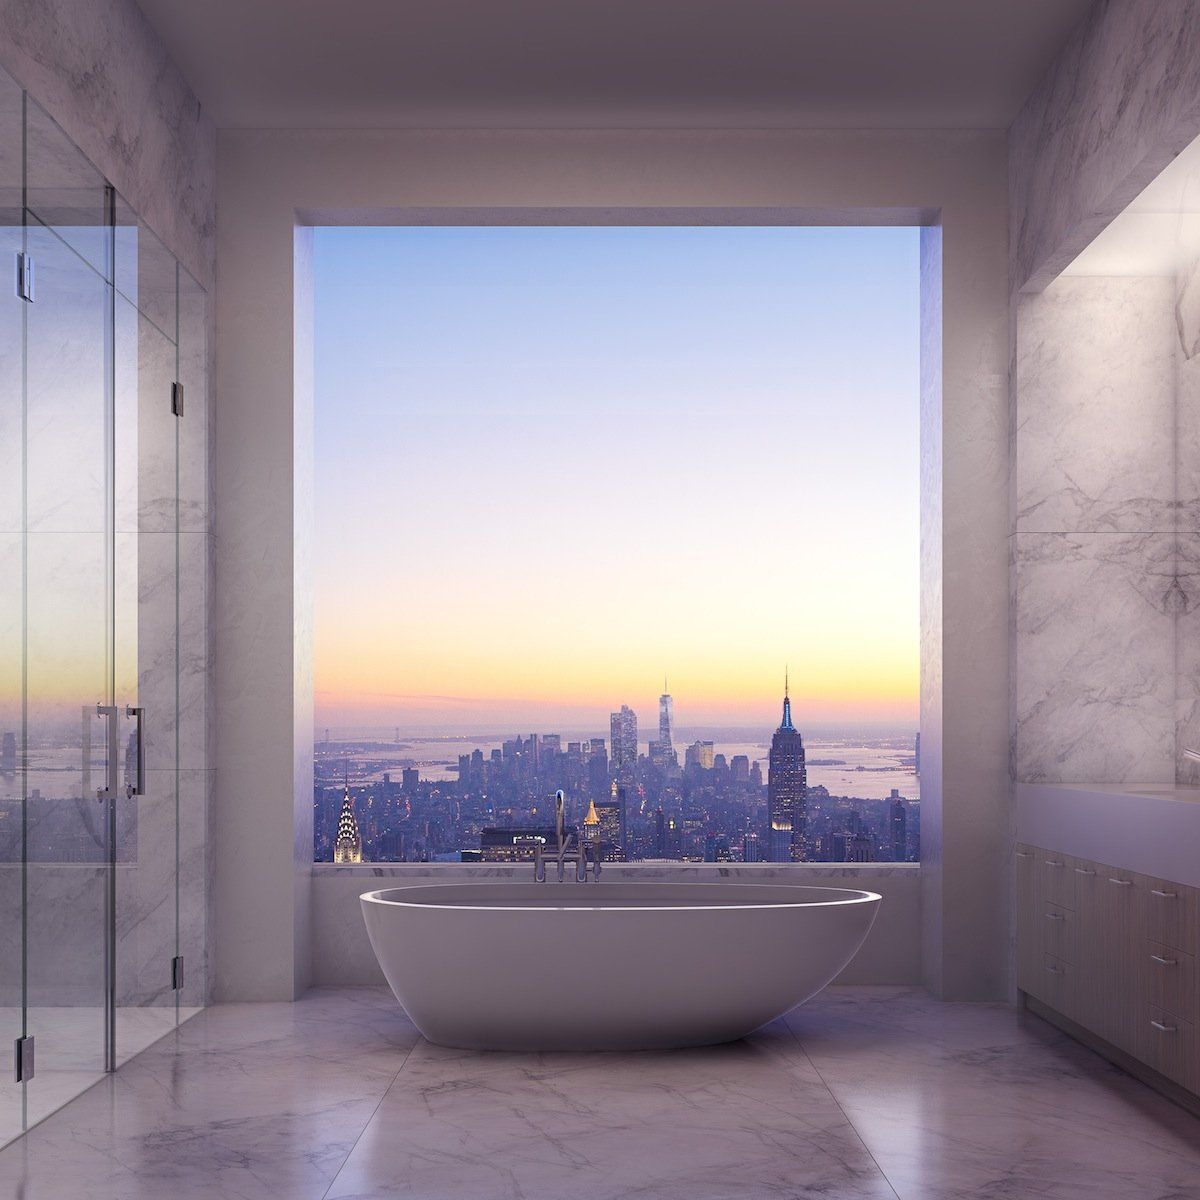 The $US79.5 Million Penthouse On Manhattan's Billionaire Row Will Have Six Bedrooms And A Private Elevator | Business Insider